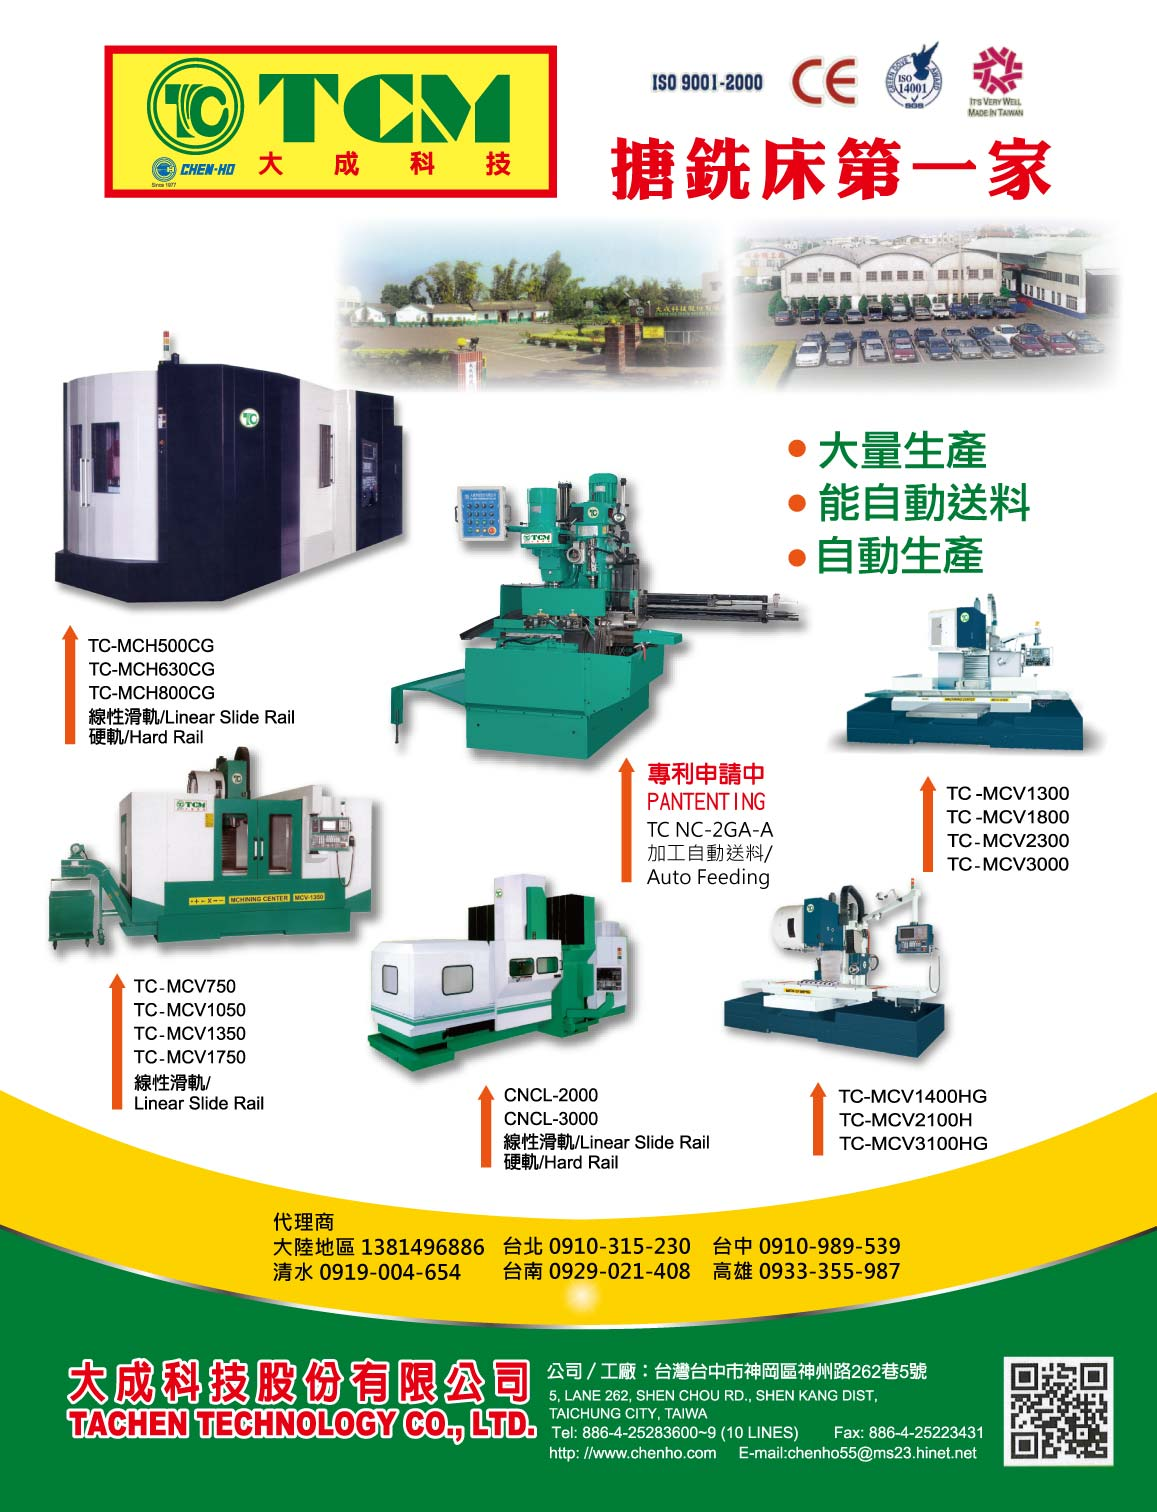 TA CHEN TECHNOLOGY CO., LTD.